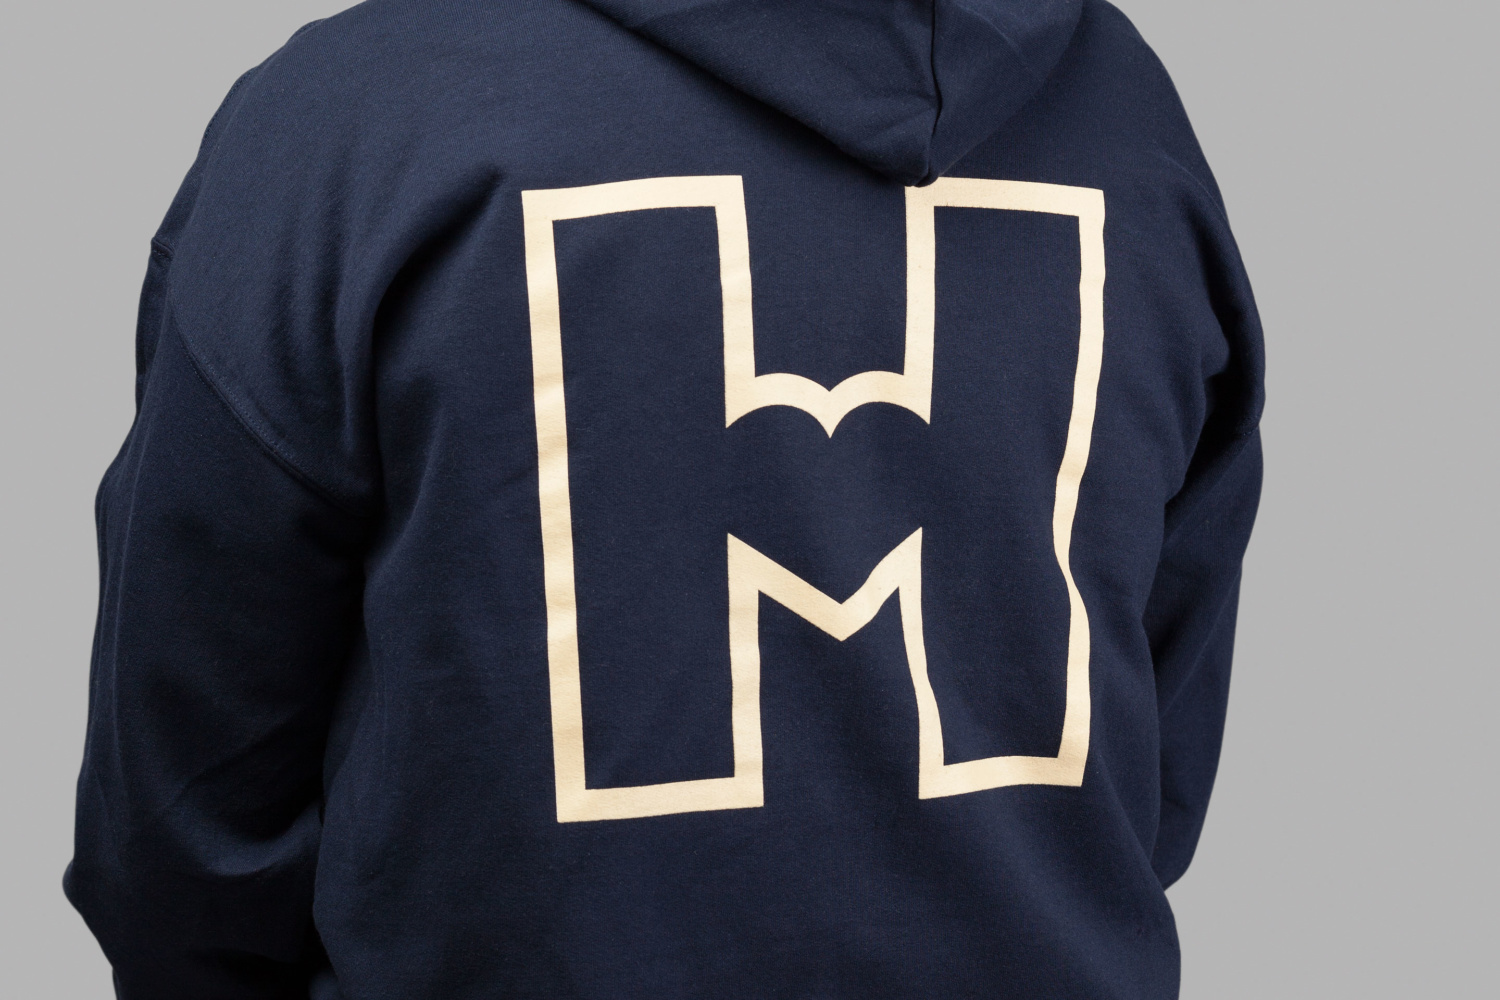 Logo and branded hoodie by Finnish graphic design studio Werklig for Helsinki City Museum